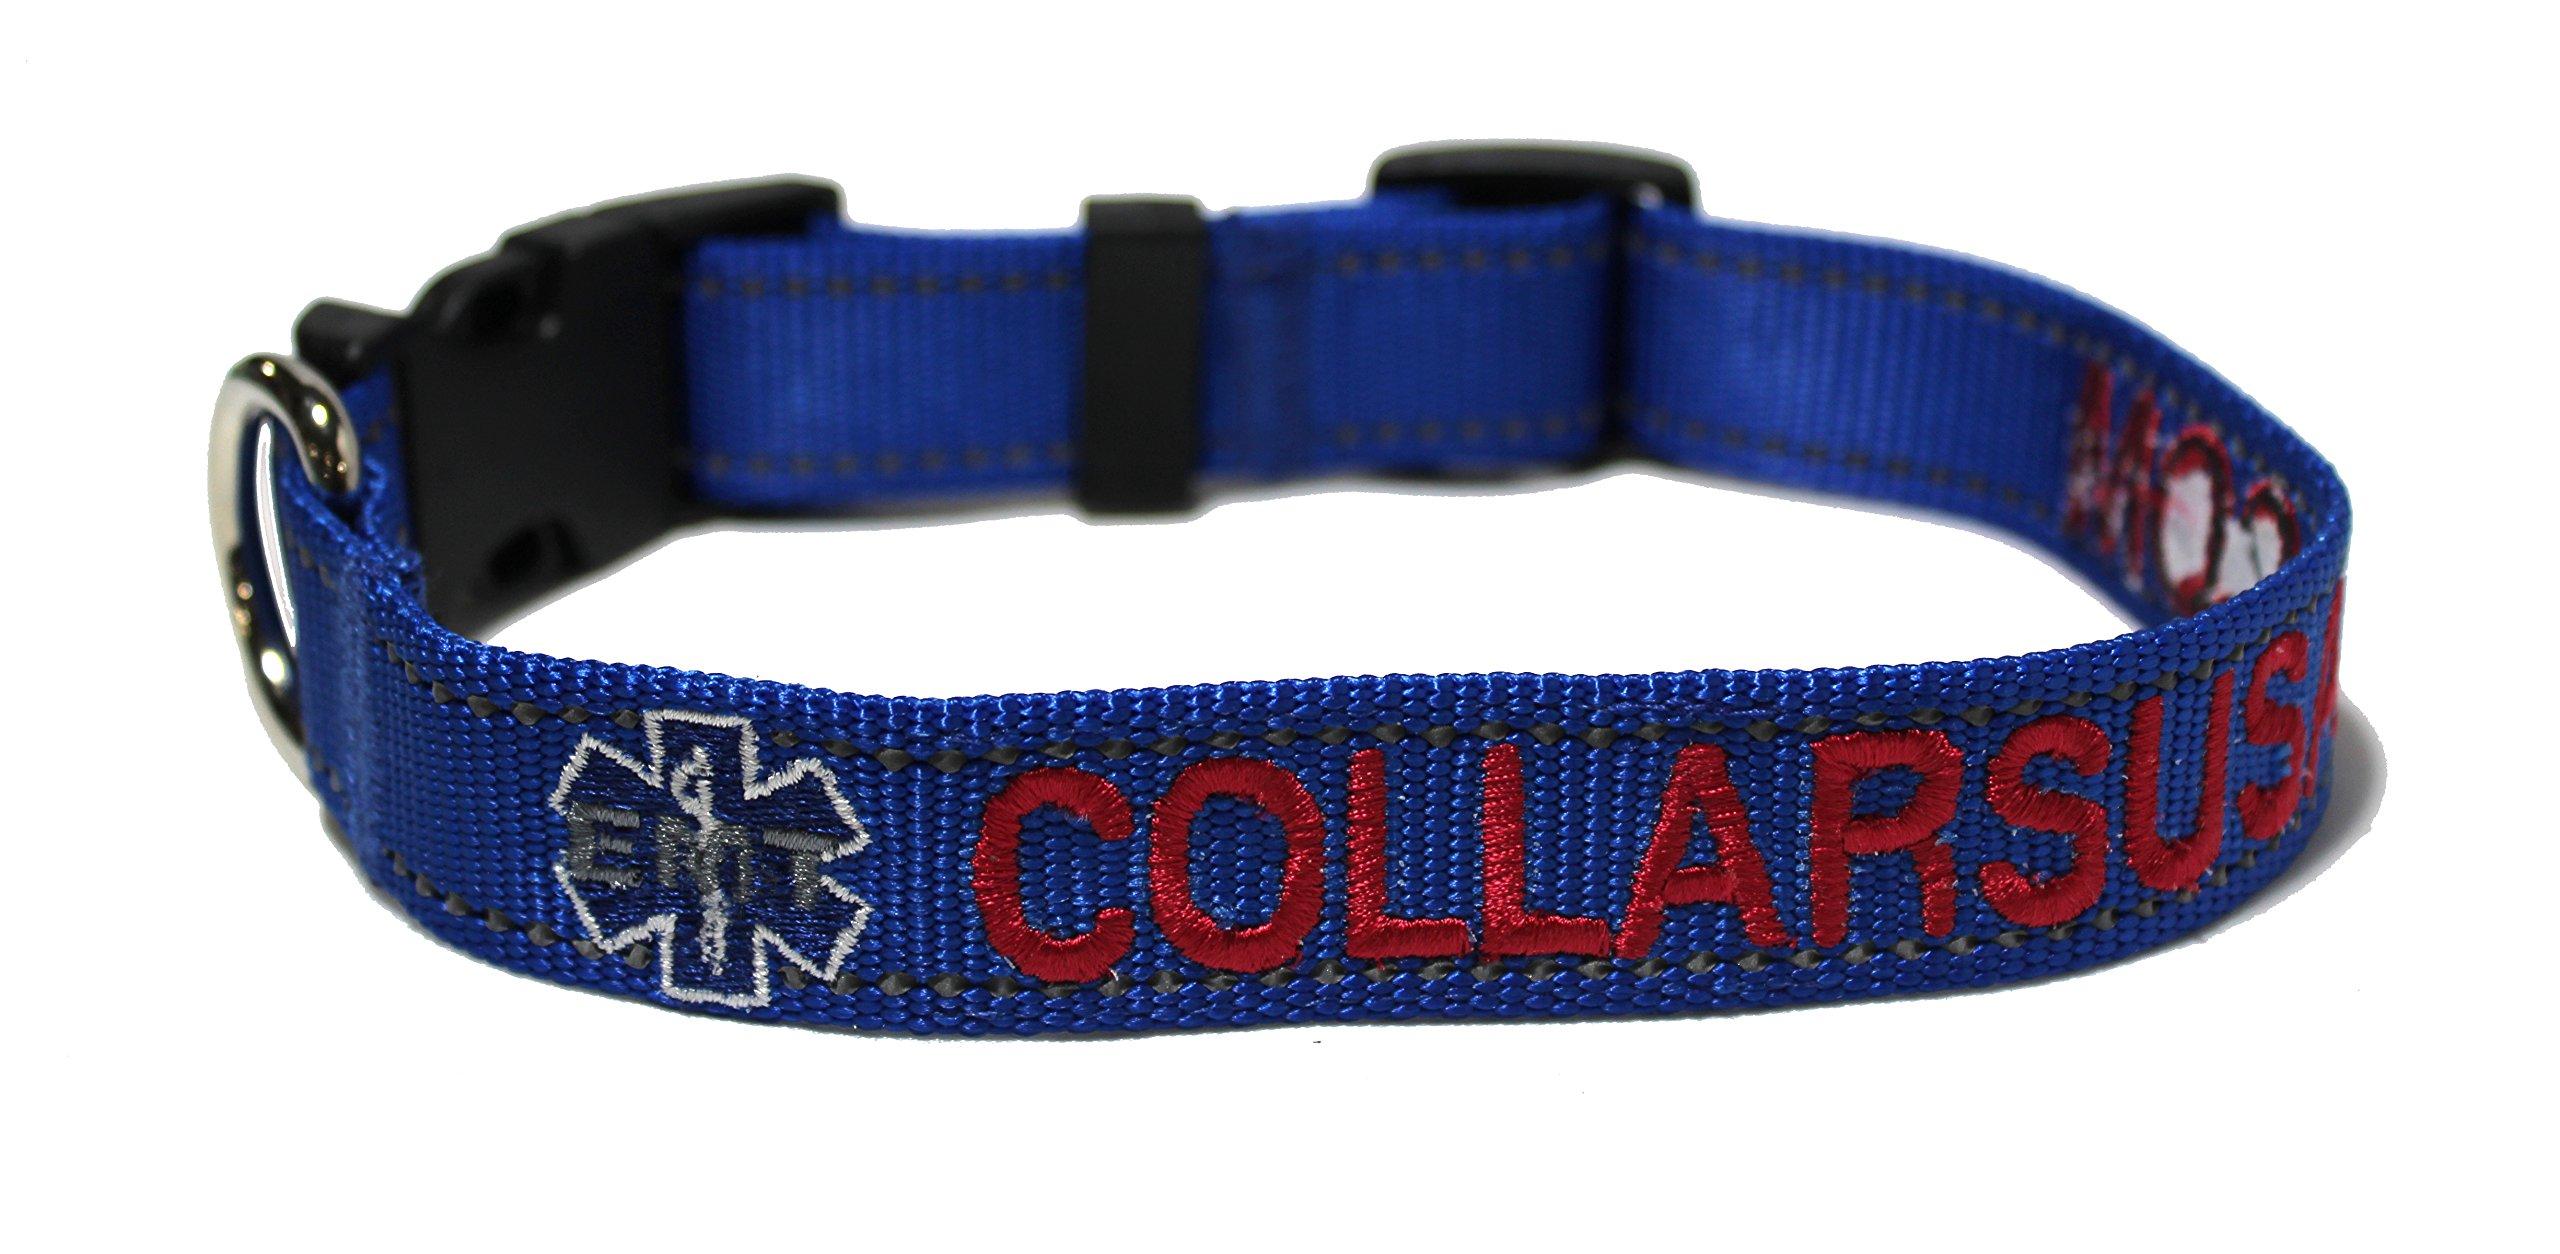 Northern Safari Custom Personalized Embroidered CAMO & Solid Webbing Dog Collars with 1 Logo, Royal Blue with Reflective Lines, Large,Metal Hardware